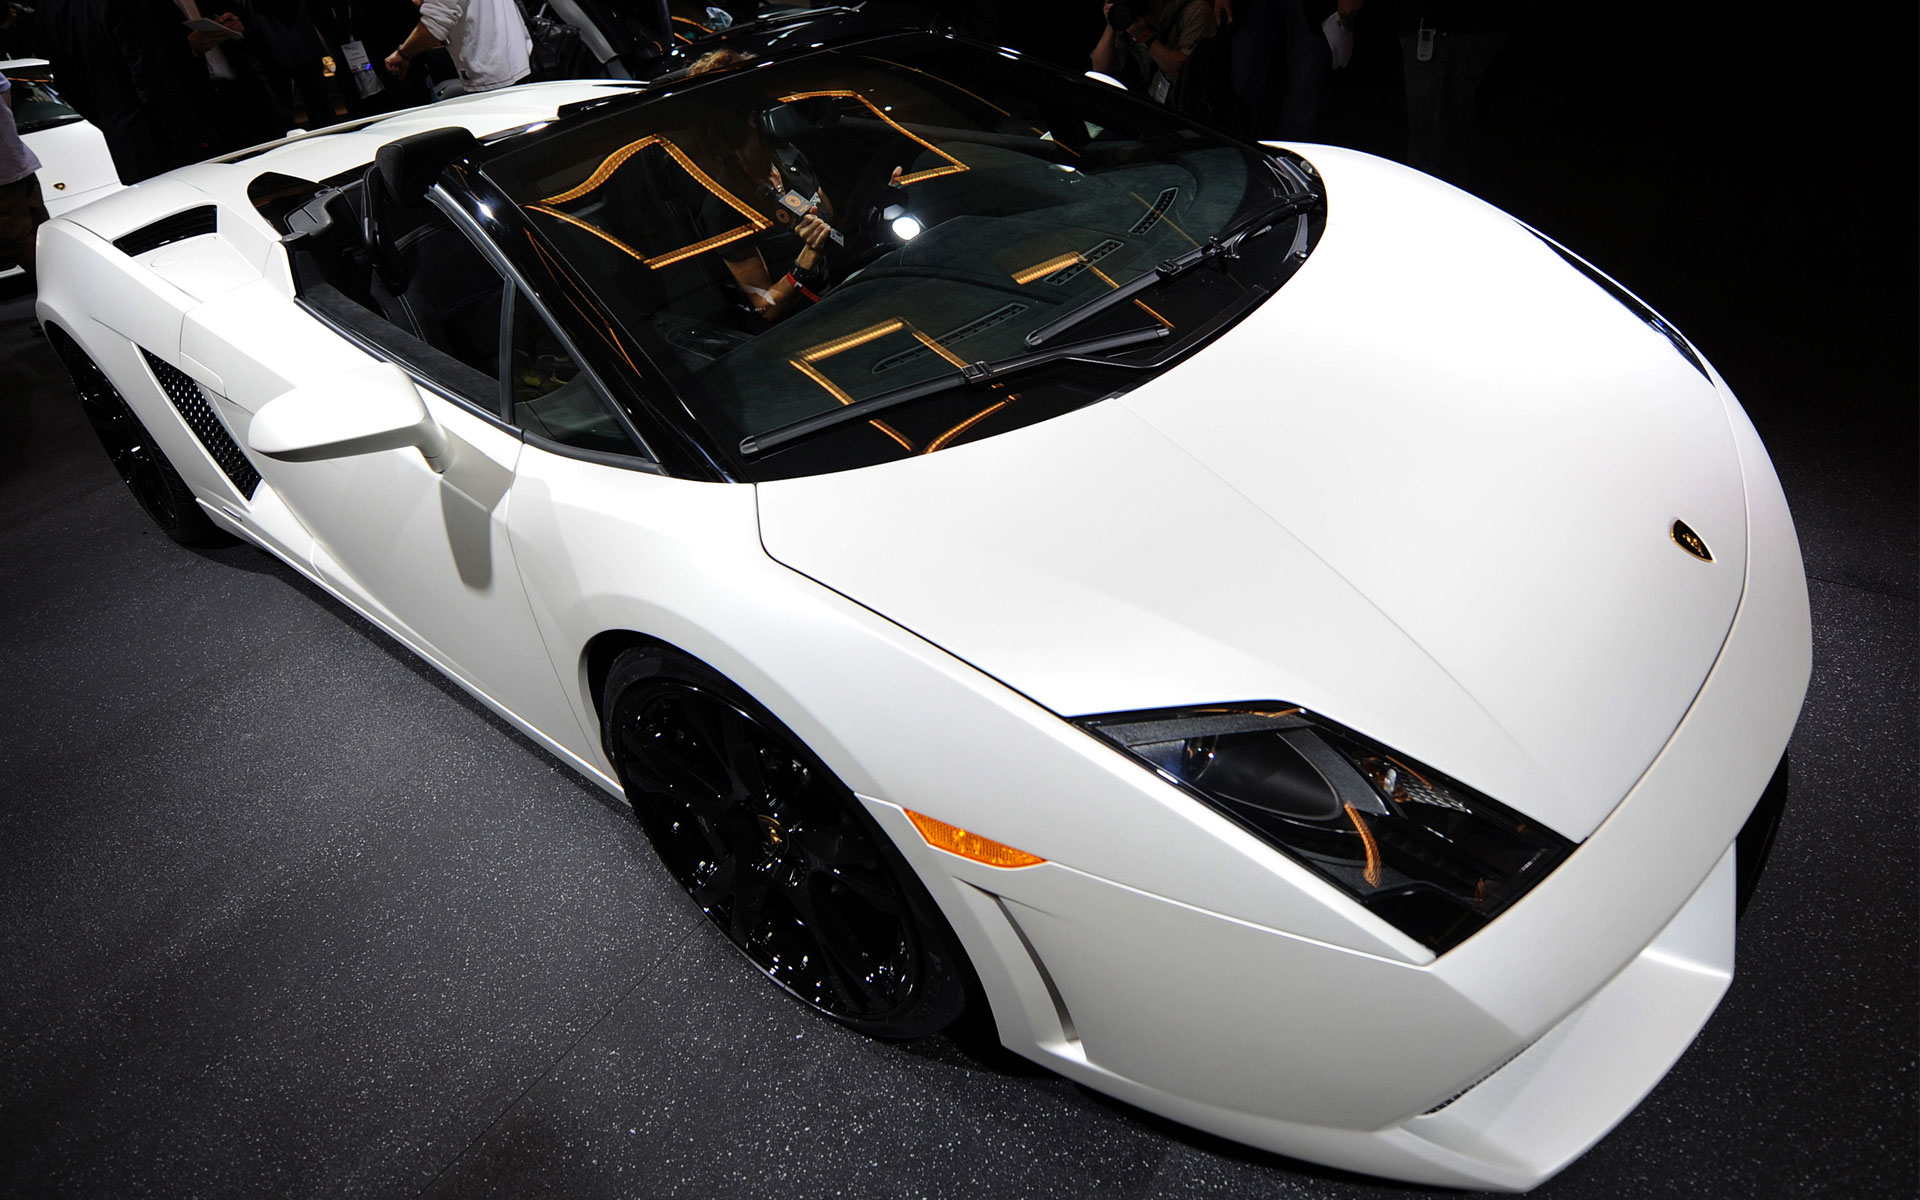 Lamborghini Beautiful Car Wide Wallpapers HD Wallpapers 1920x1200